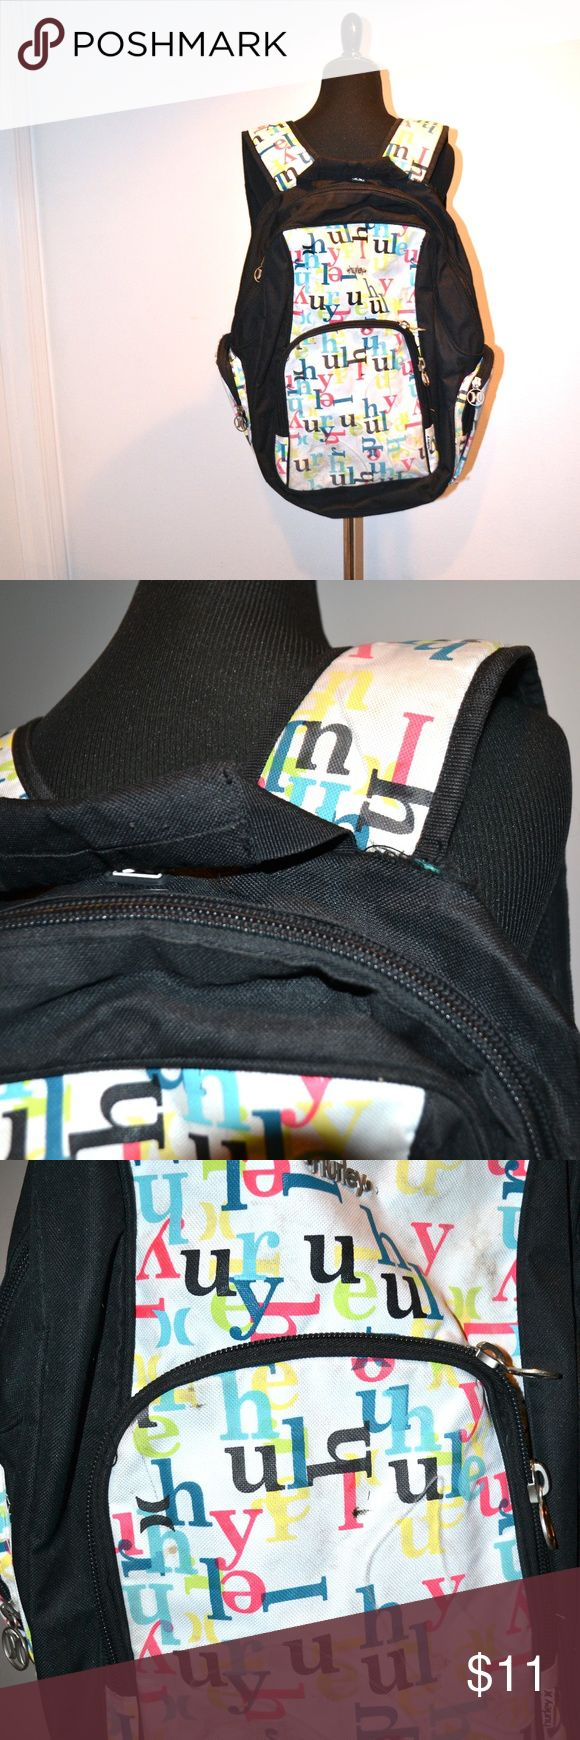 ❤️••hurley backpack•• Used but lots of life left. The front has a bit of dirt on it, but not stained; there is a tear near the right strap (see pic), but its minor. Large top pocket for laptops, books, and other large items. Front pocket has organizers for phone, pens, etc in it.   This is a 5 for $25 item in my closet! Bundle up 5 items from my closet with a ❤️•• in the title and offer $25. Check out with other items I have included in my 5 for $25 sale! Clearing out for spring boutique…